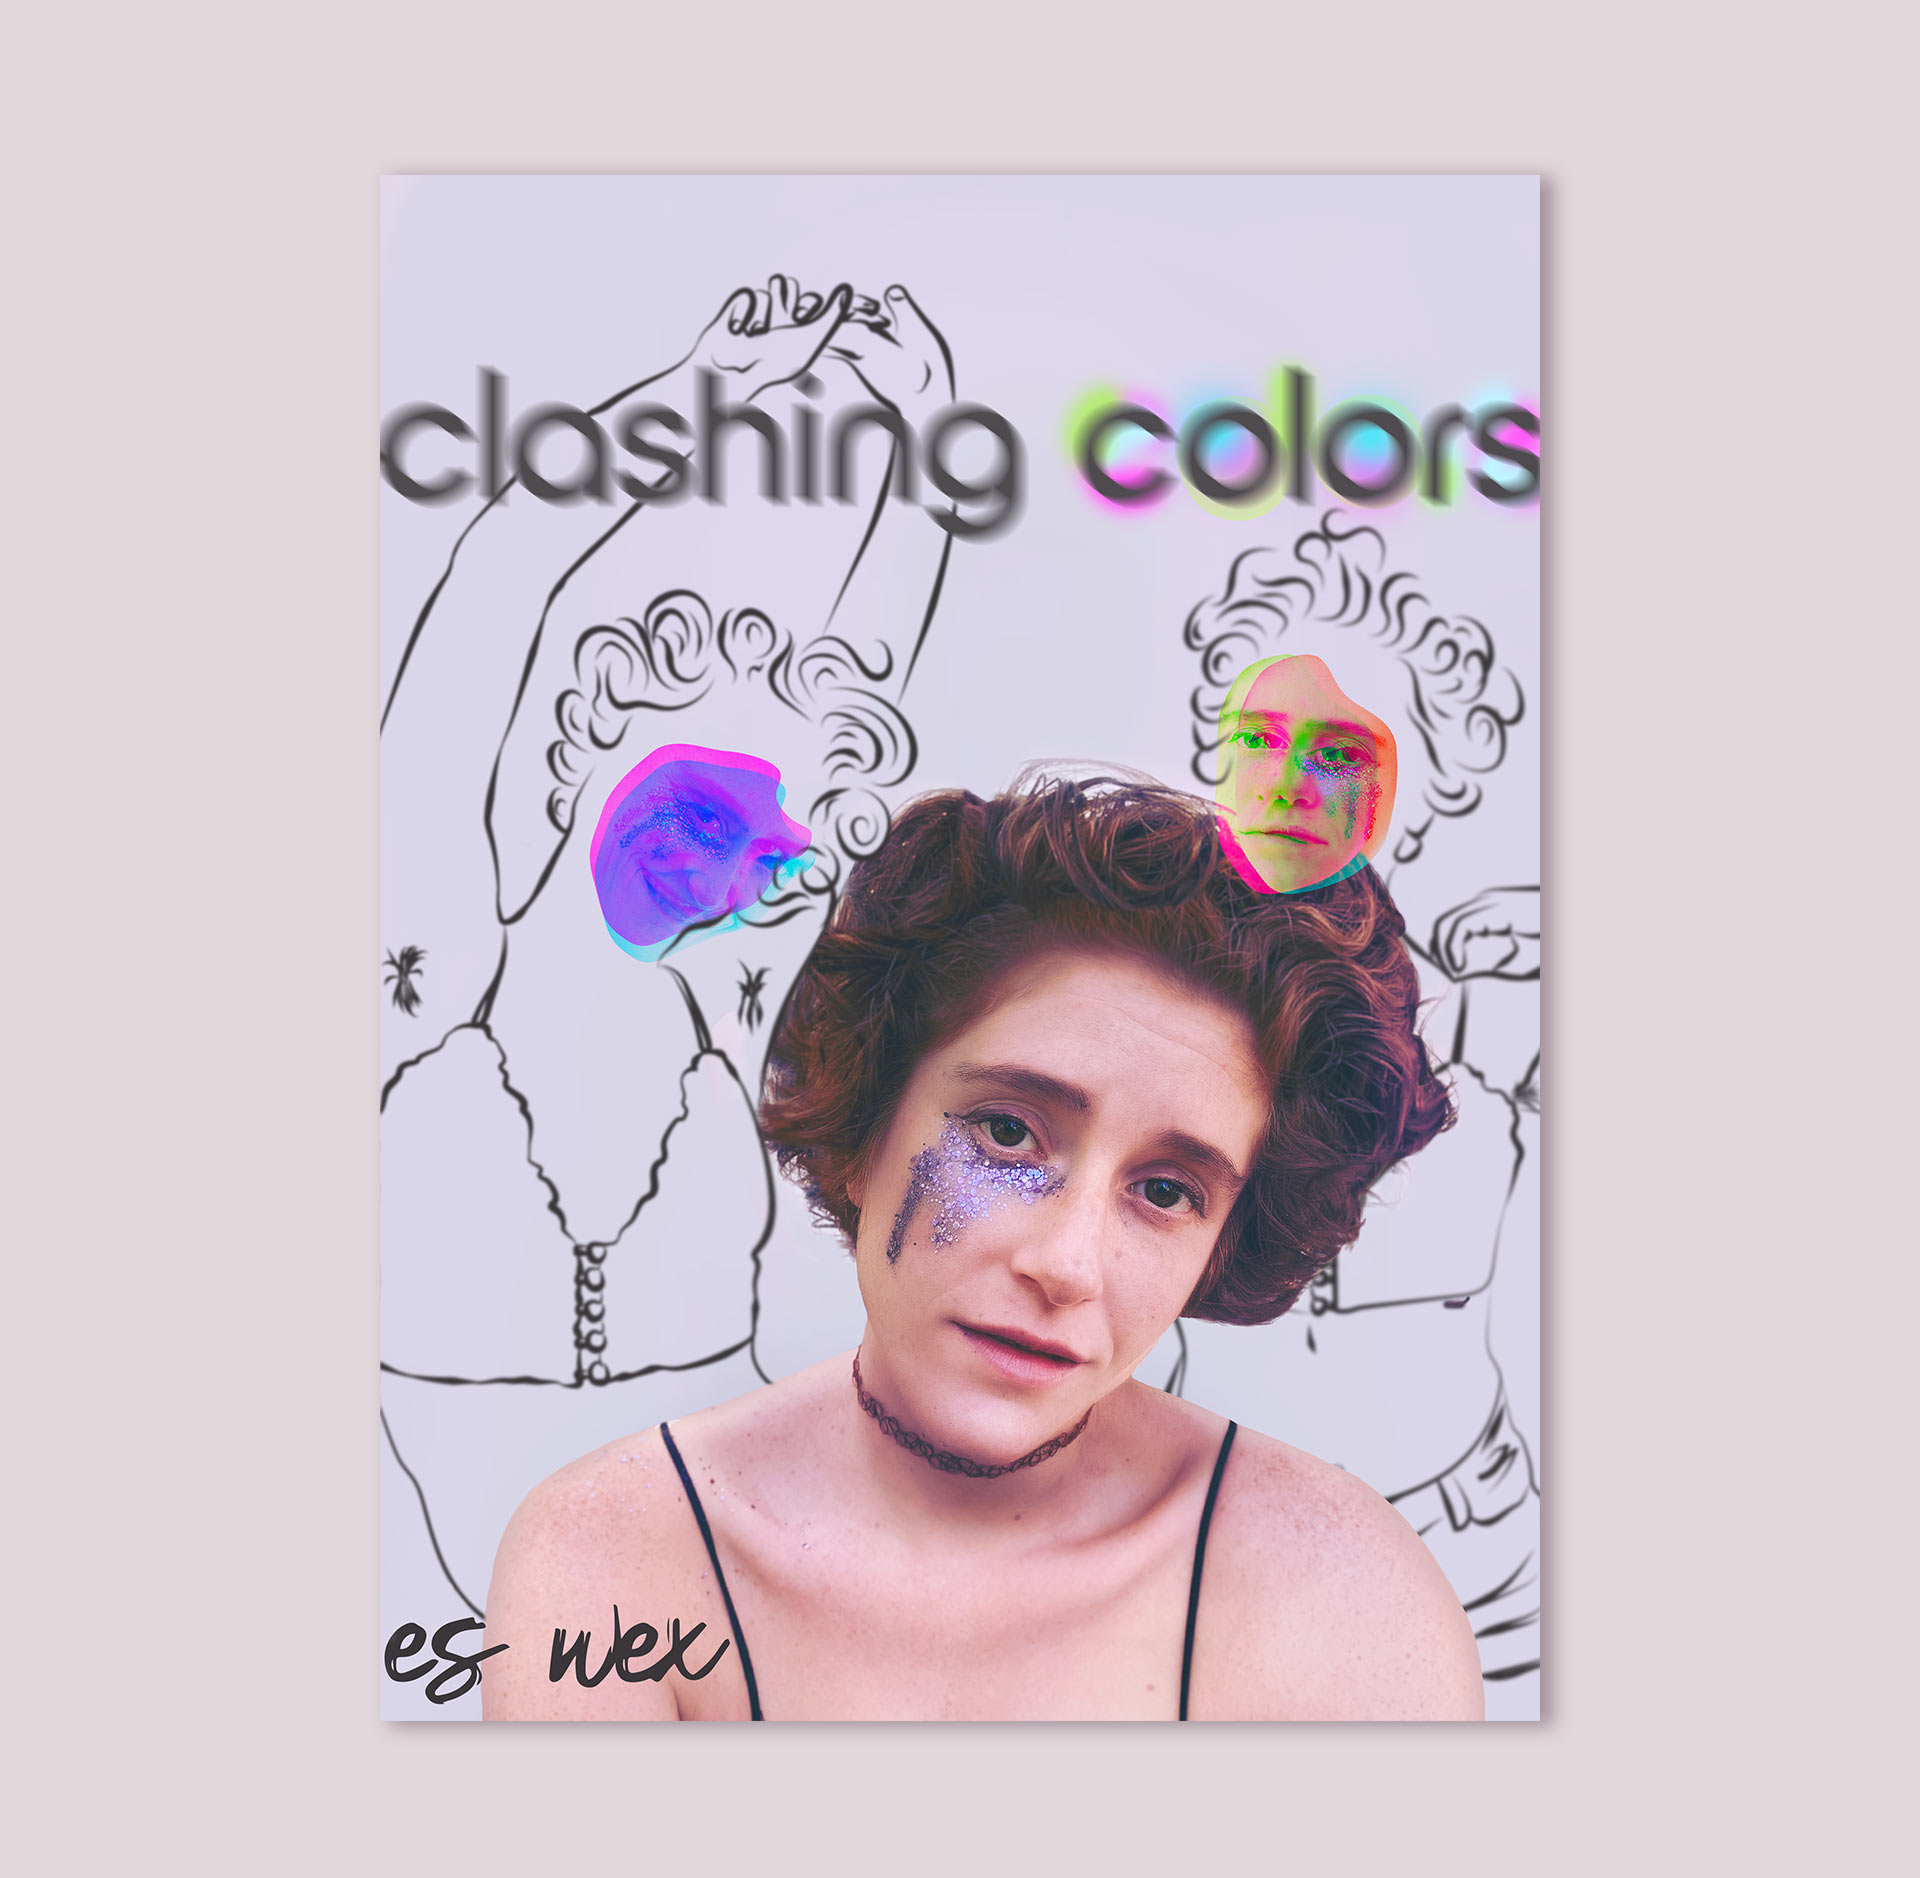 'Clashing Colors' single art has the artist front and center and two illustrated versions of them on the background. The three represent the stages of a breakup